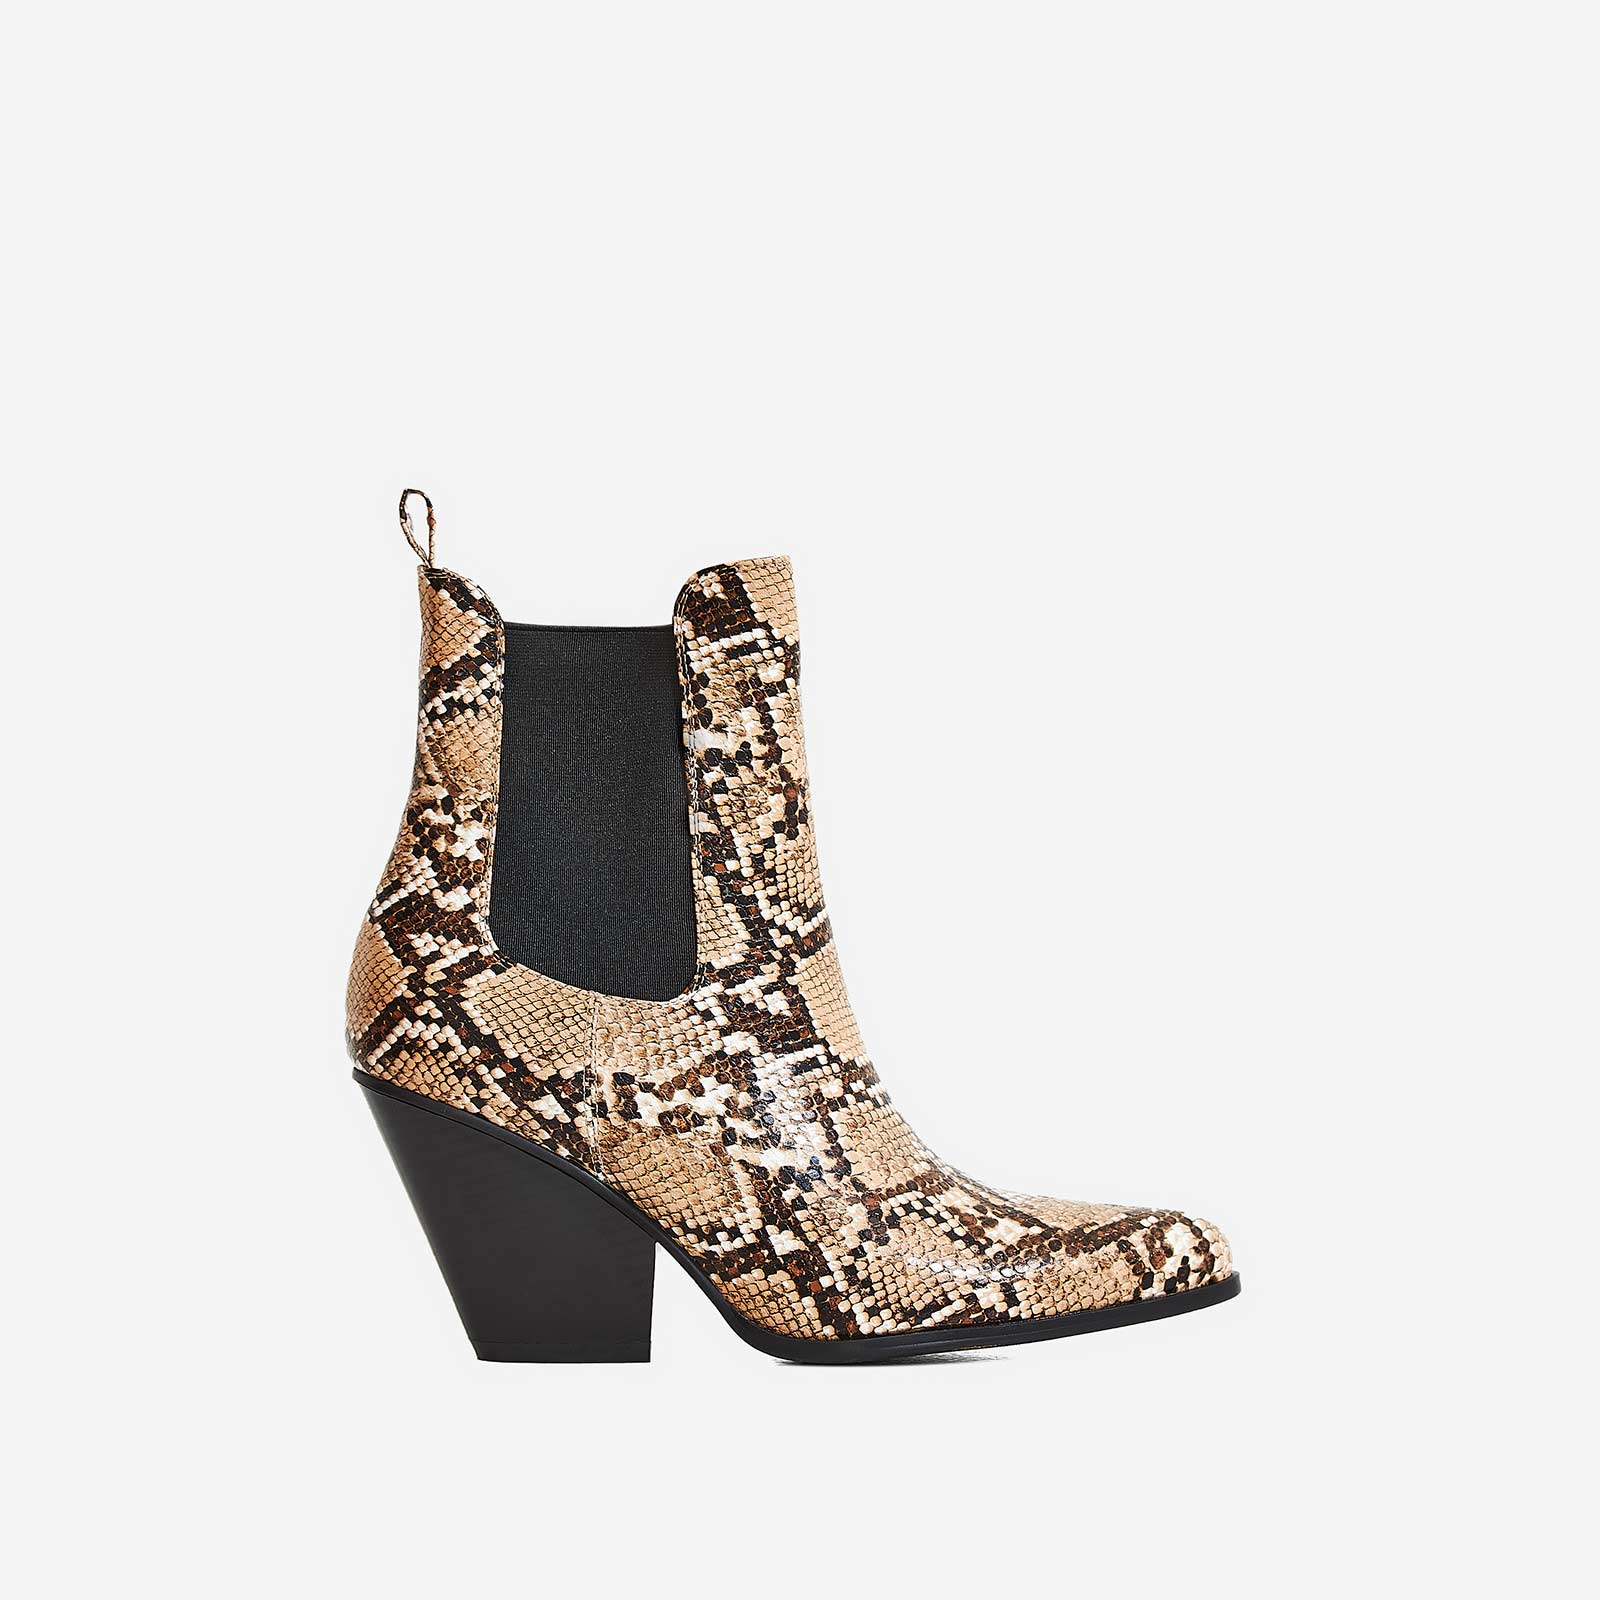 cedd3b65b22 Camille Western Ankle Boot In Nude Snake Print Faux Leather